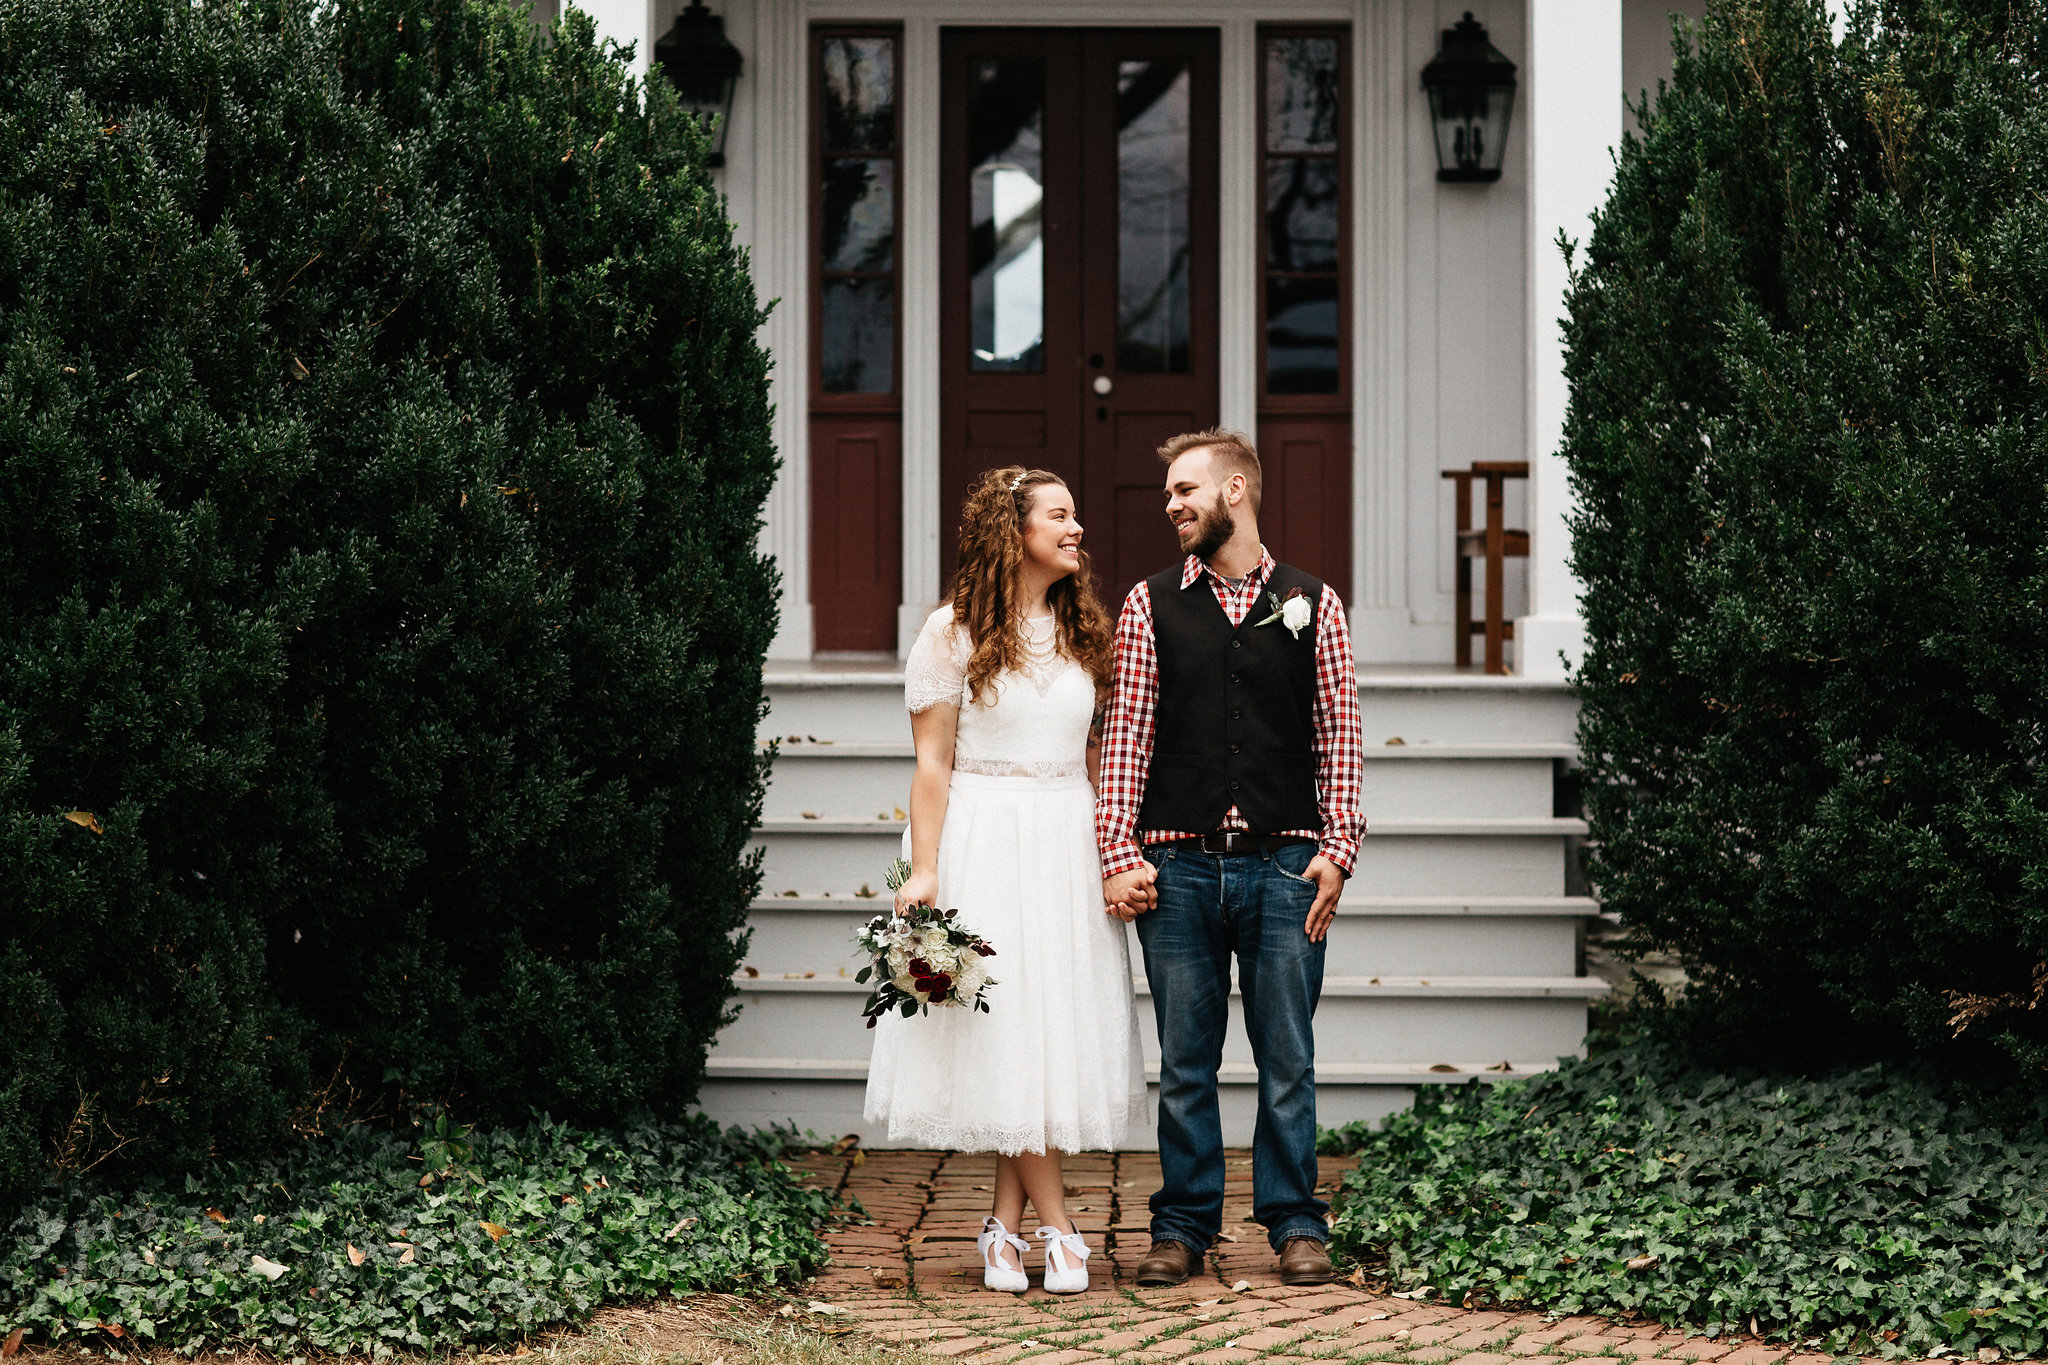 Caitlin&CodyMarried2017-11-03at19.19.38PM44.jpg